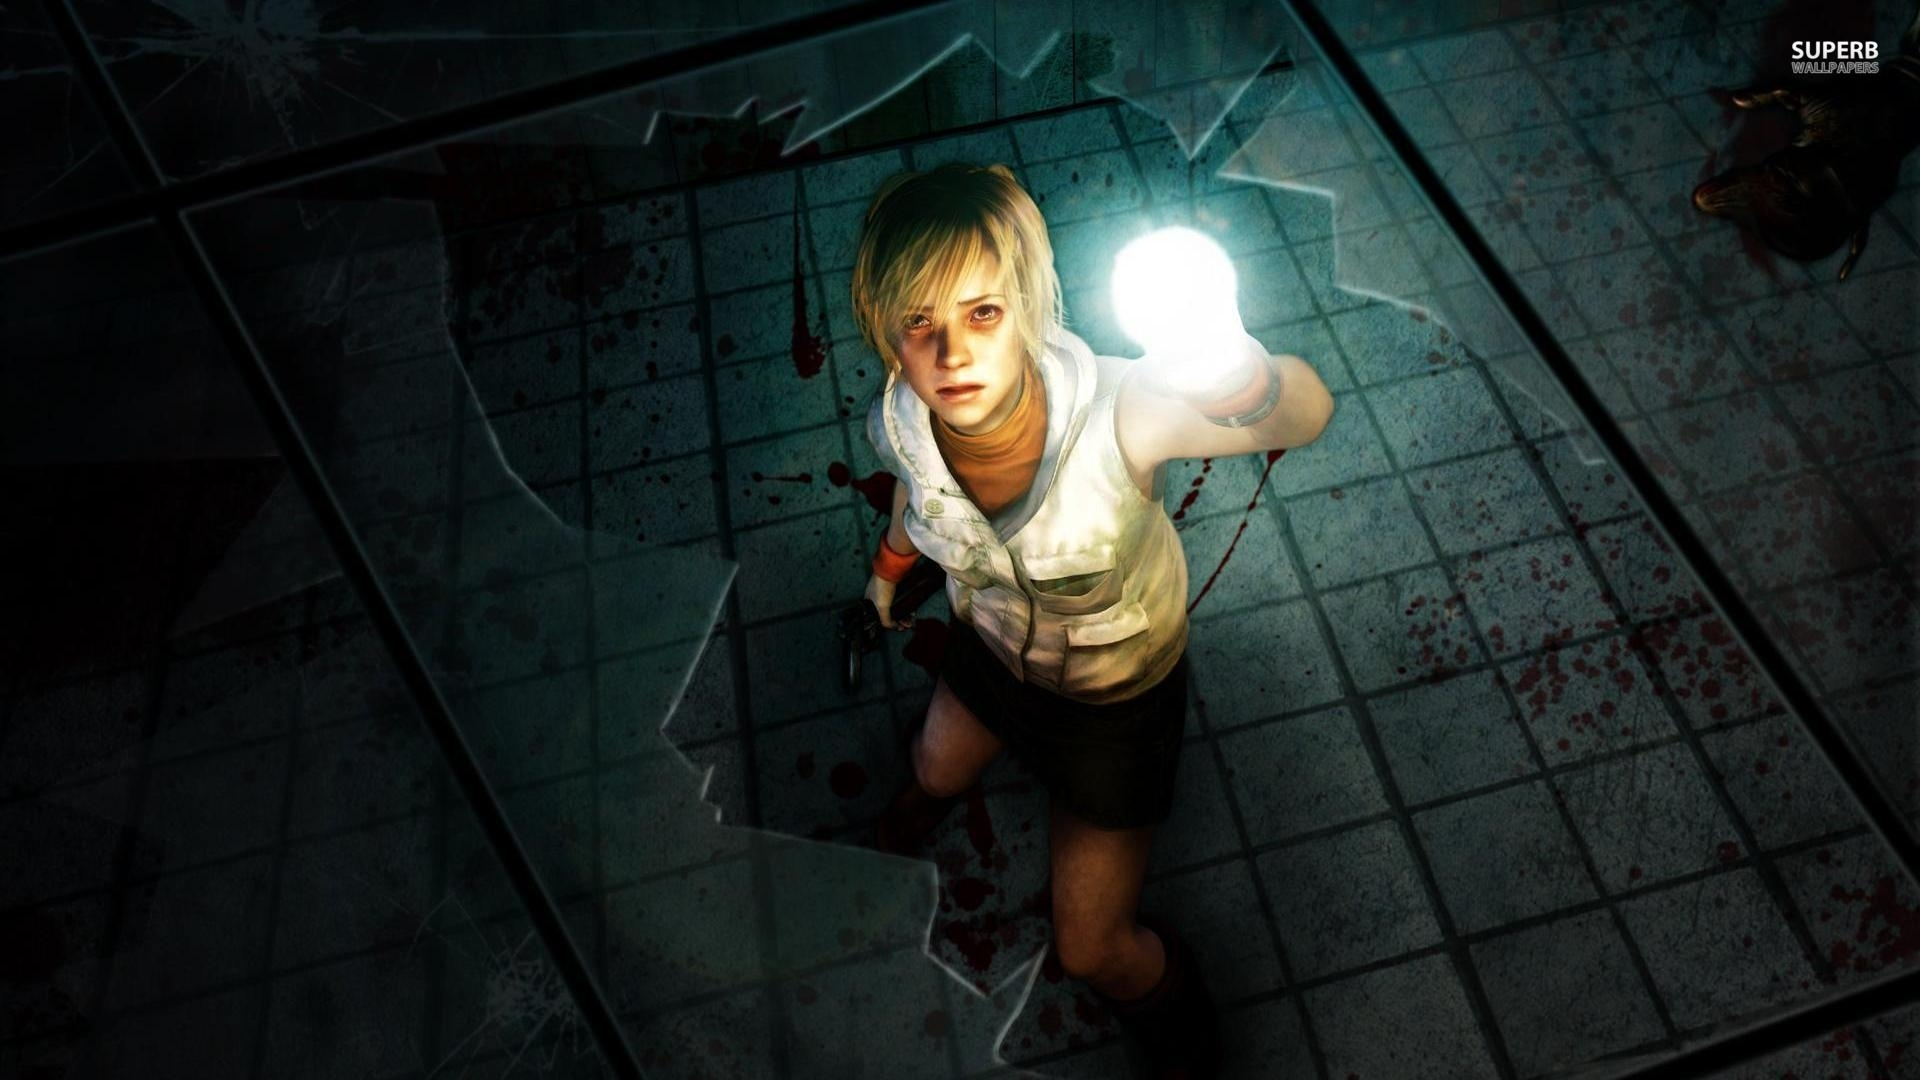 silent hill 3 wallpapers - wallpaper cave